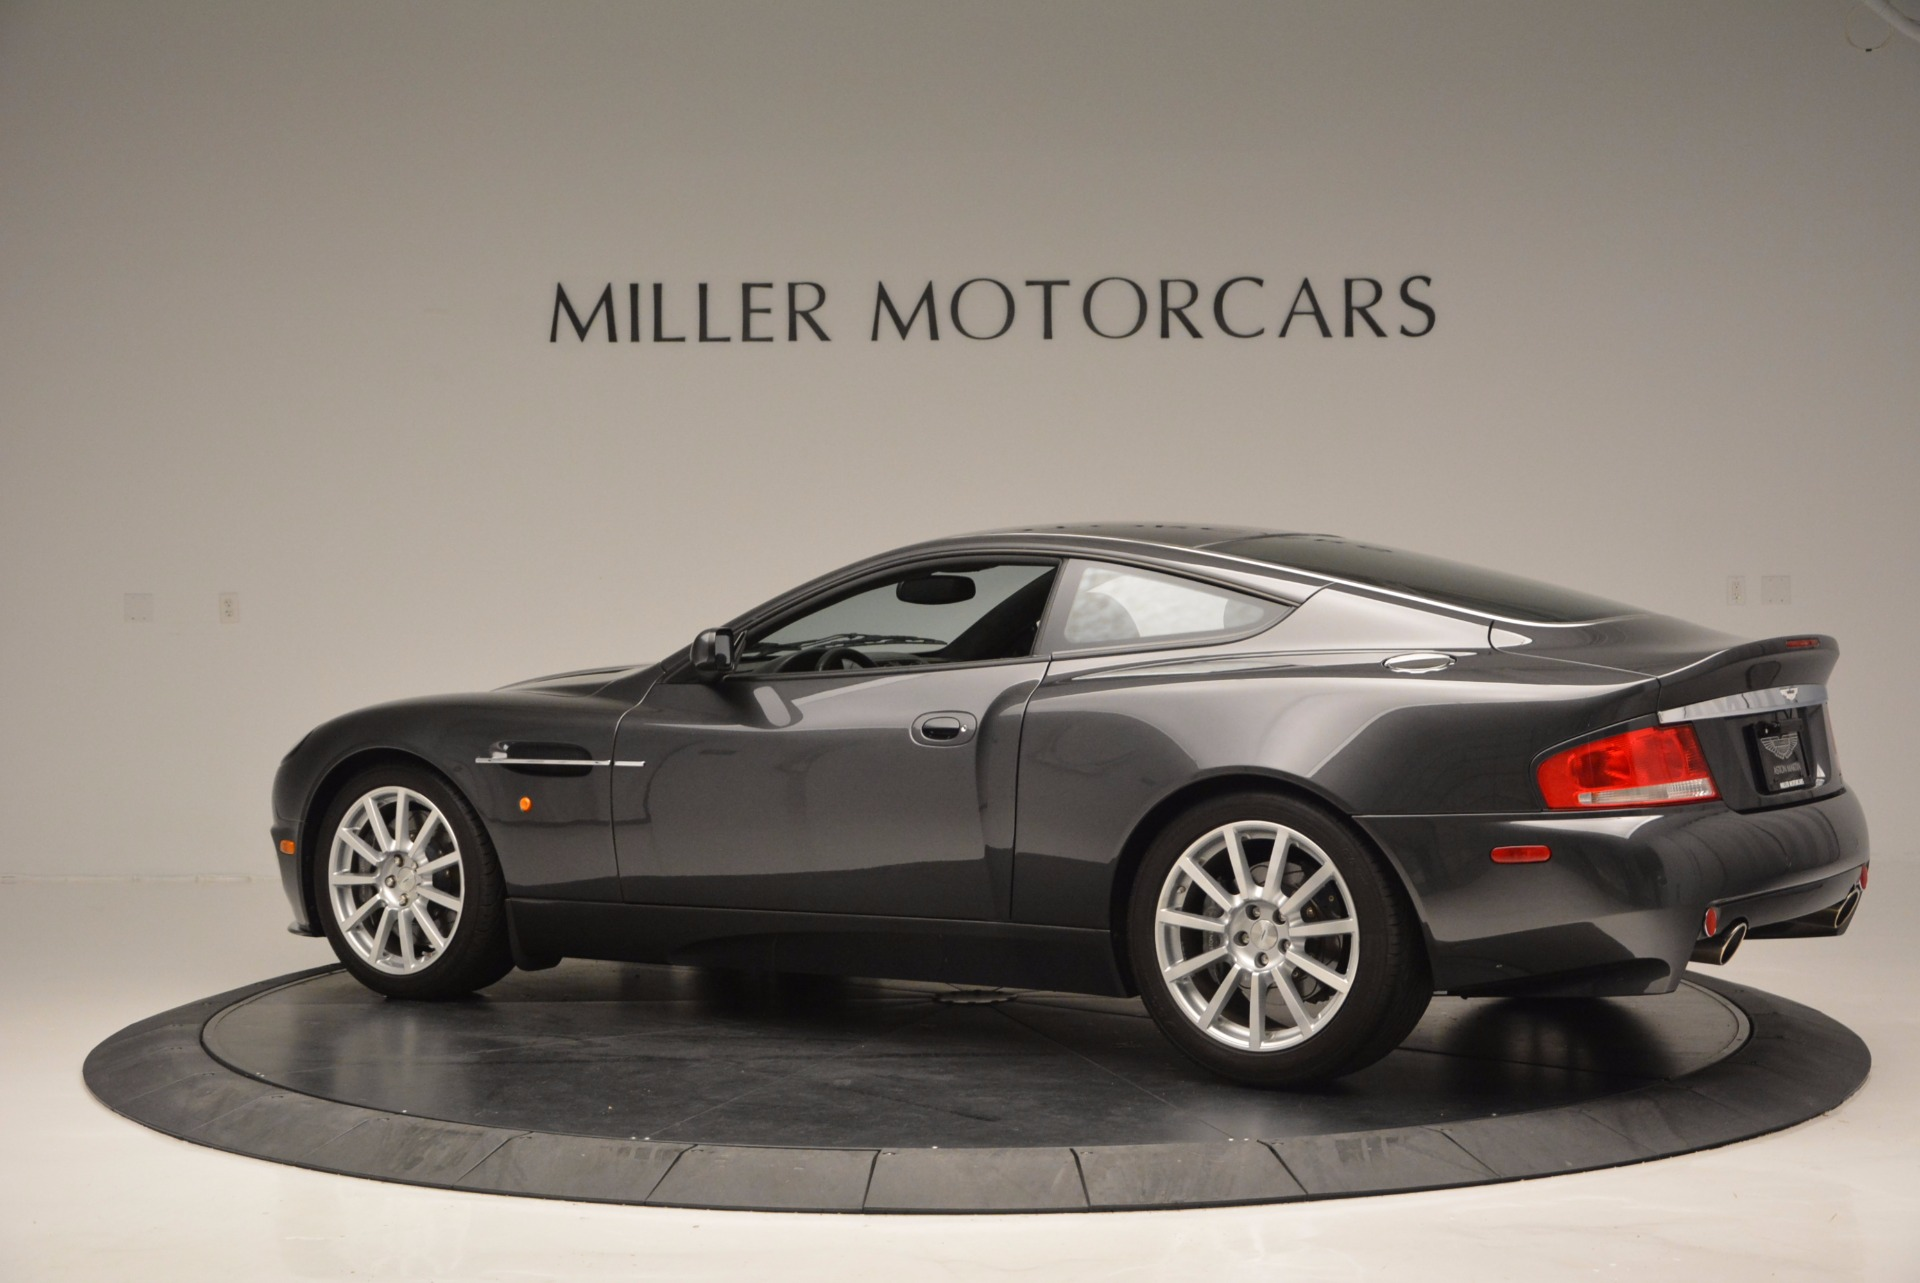 Used 2005 Aston Martin V12 Vanquish S For Sale In Greenwich, CT. Alfa Romeo of Greenwich, 7097 645_p4